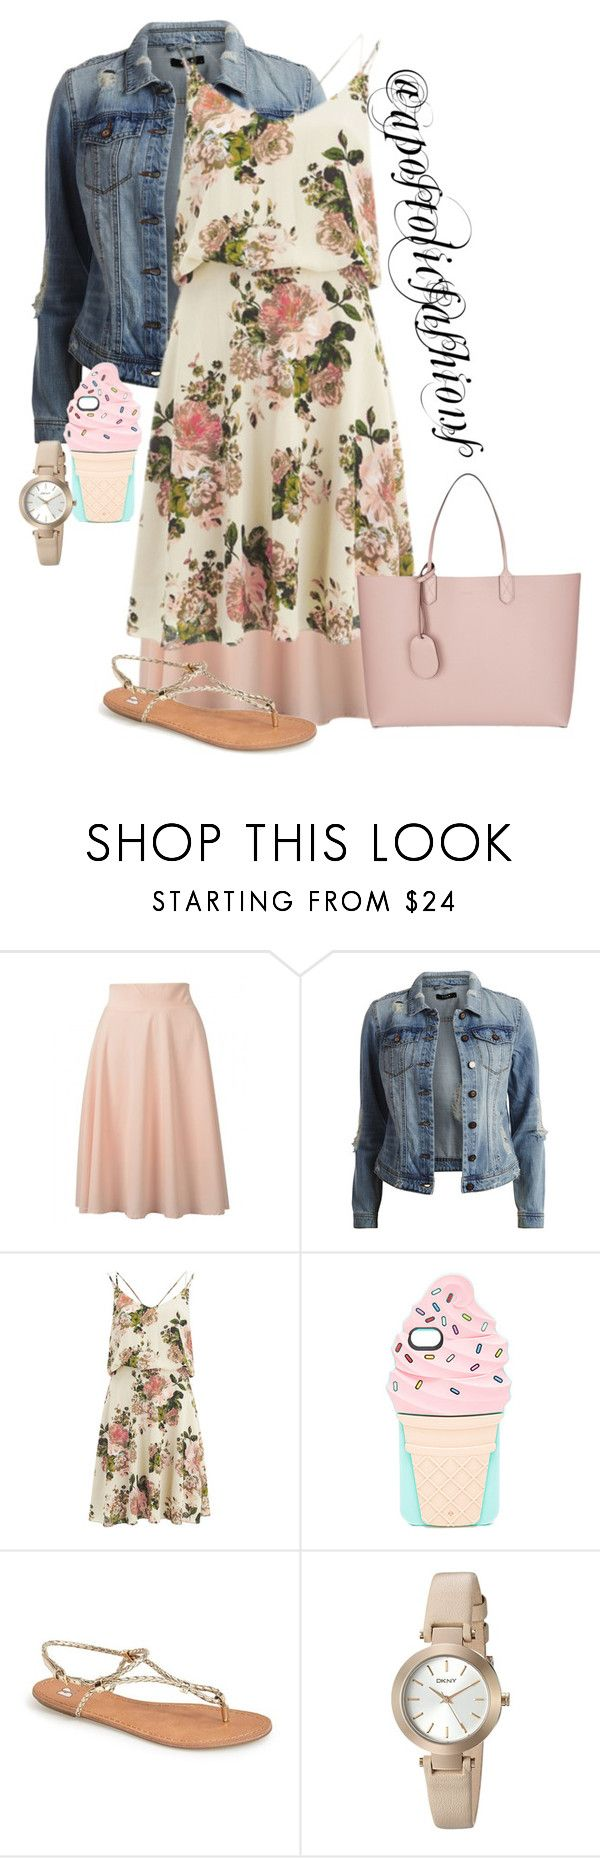 """""""Apostolic Fashions #1316"""" by apostolicfashions on Polyvore featuring VILA, Kate Spade, BP., DKNY and Gucci"""